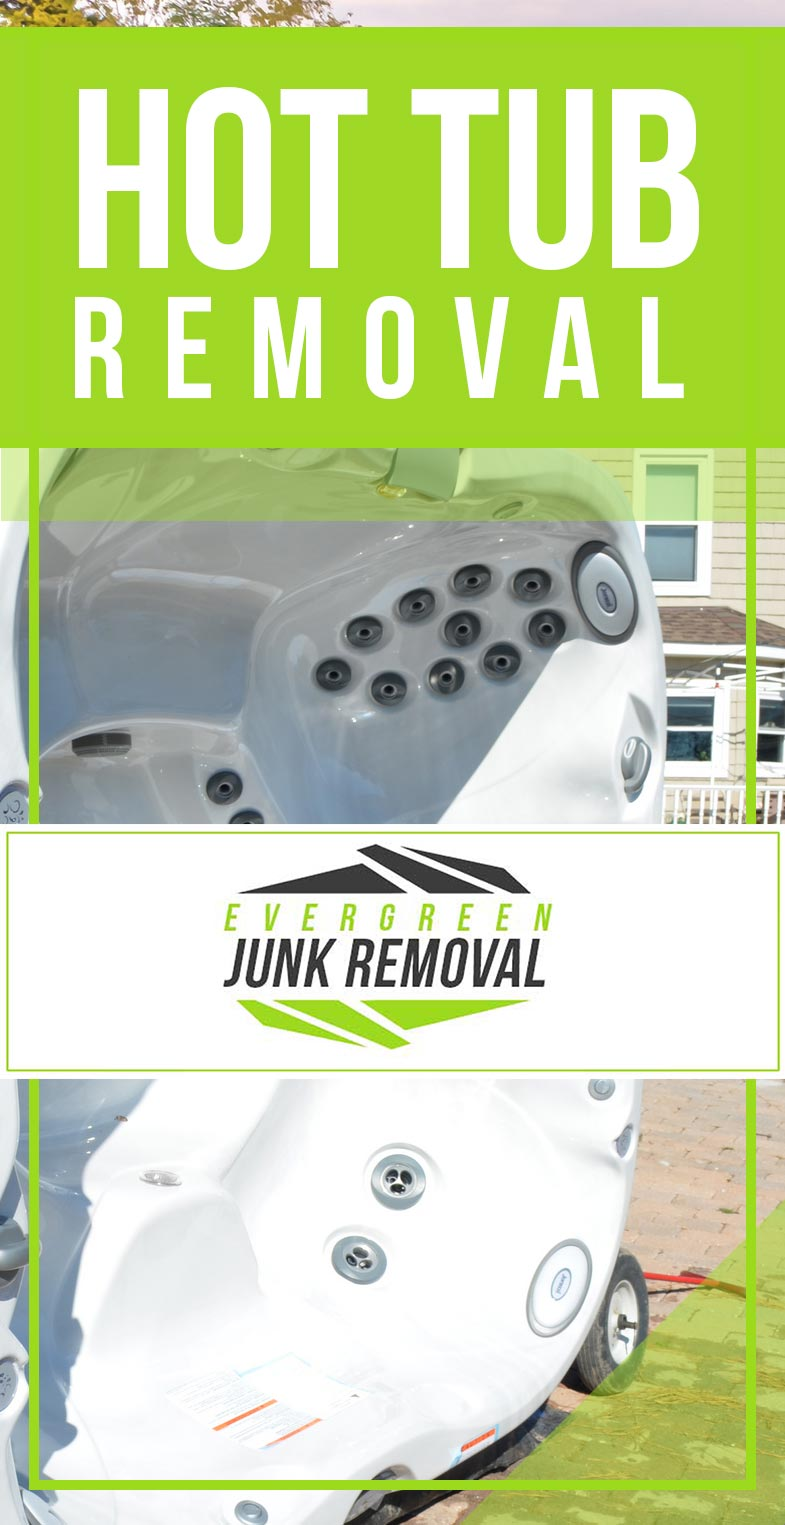 Junk Removal Hillsboro Pines Hot Tub Removal